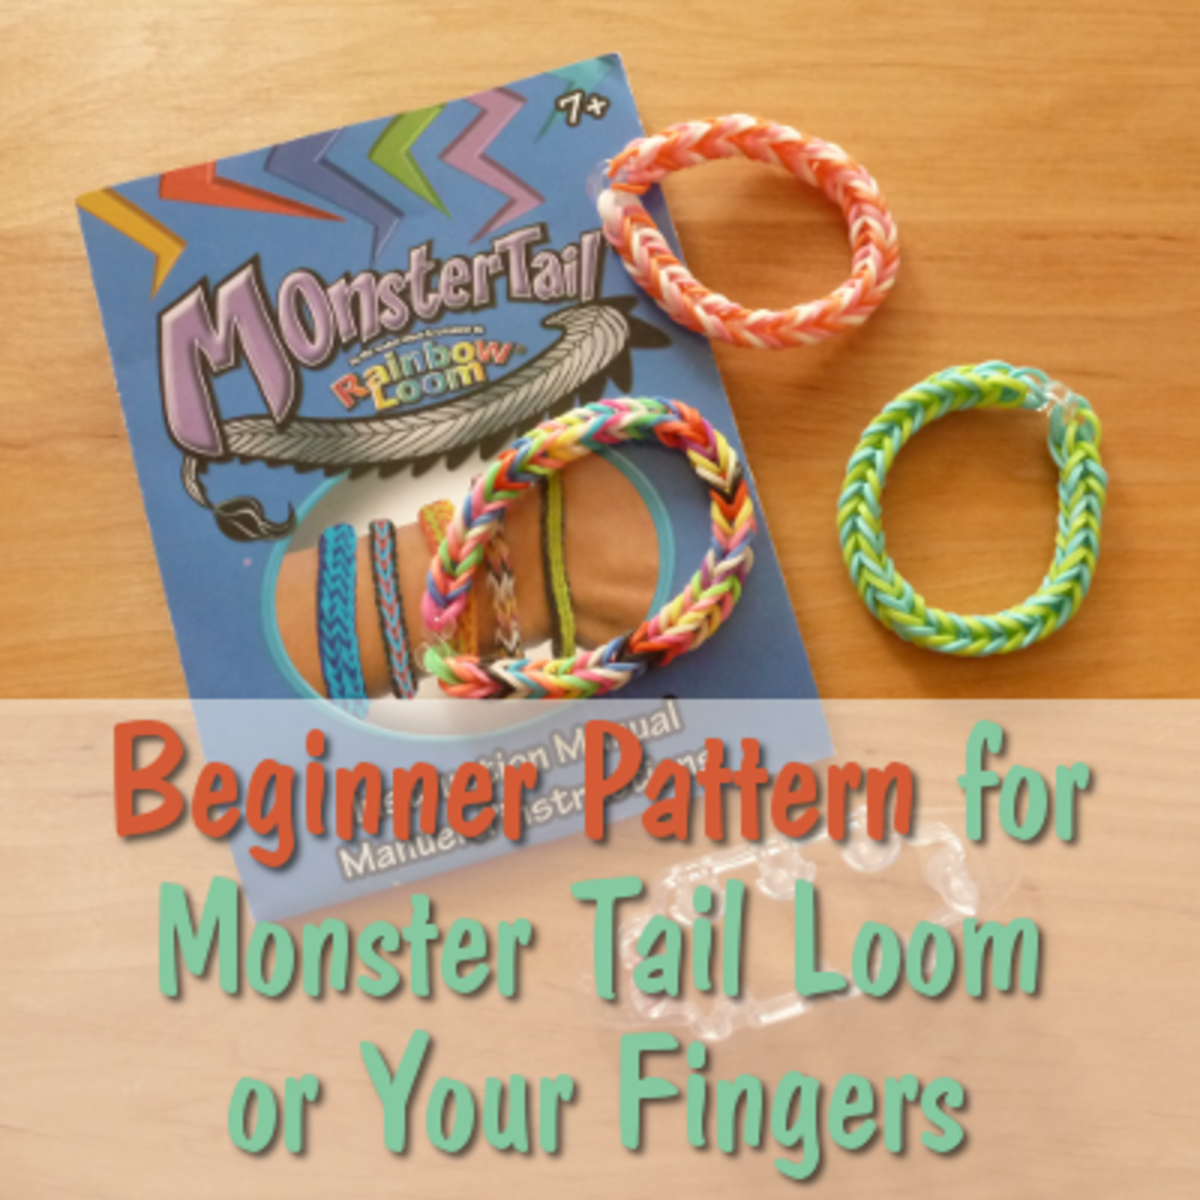 Beginner Pattern for the Monster Tail Rainbow Loom